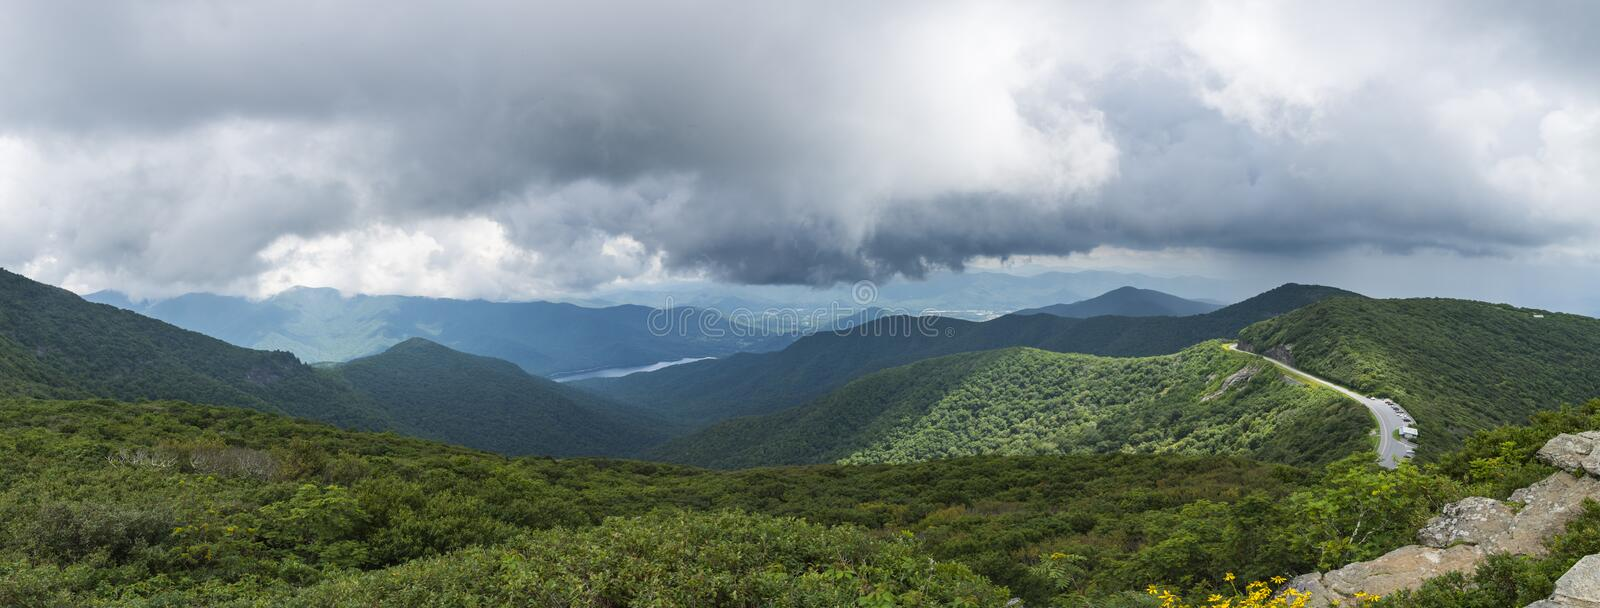 Craggy Gardens Panorama royalty free stock images